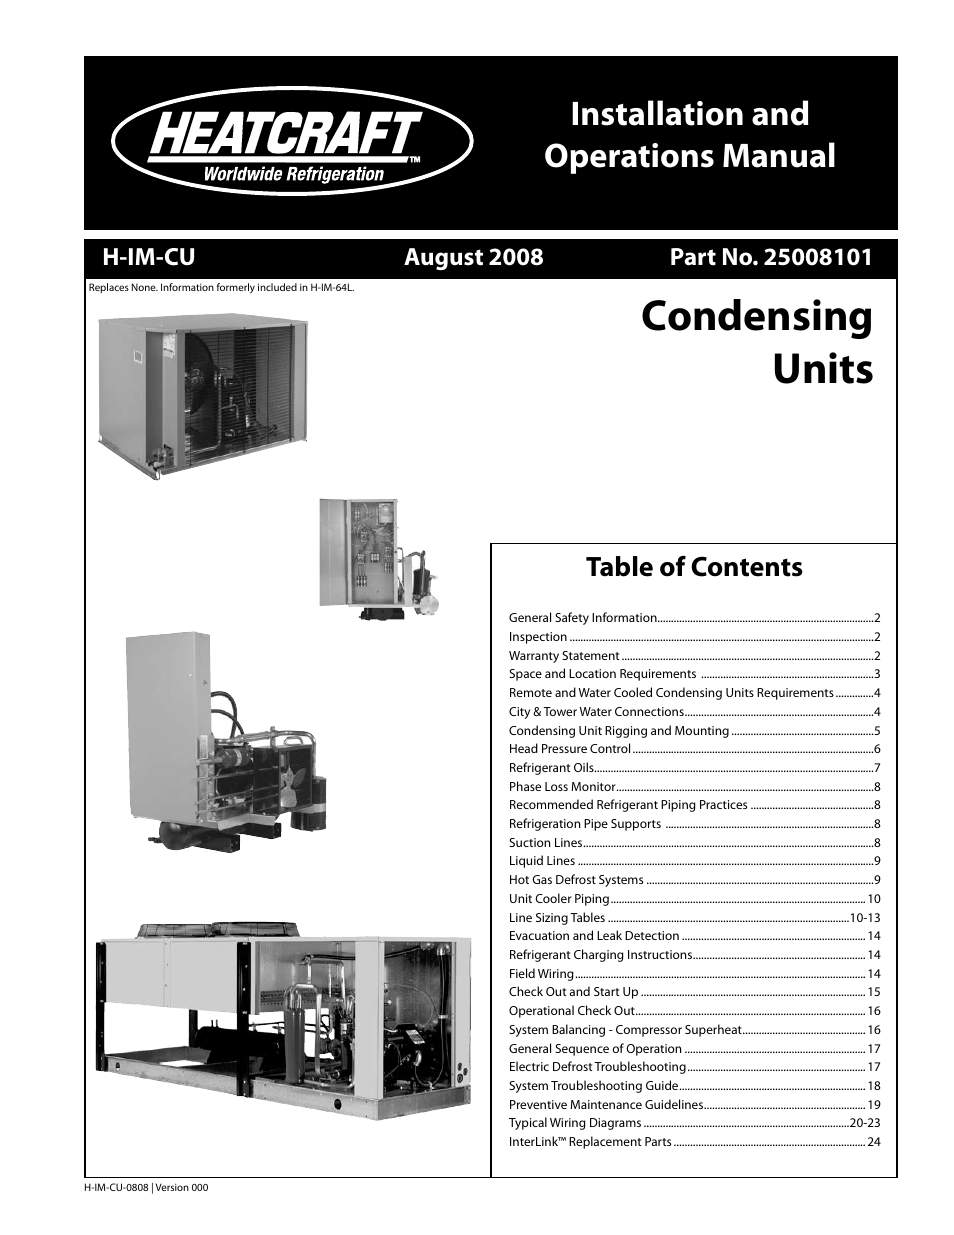 Heatcraft Refrigeration Products Condensing Units H Im Cu User Installation Unit And System Manual 24 Pages